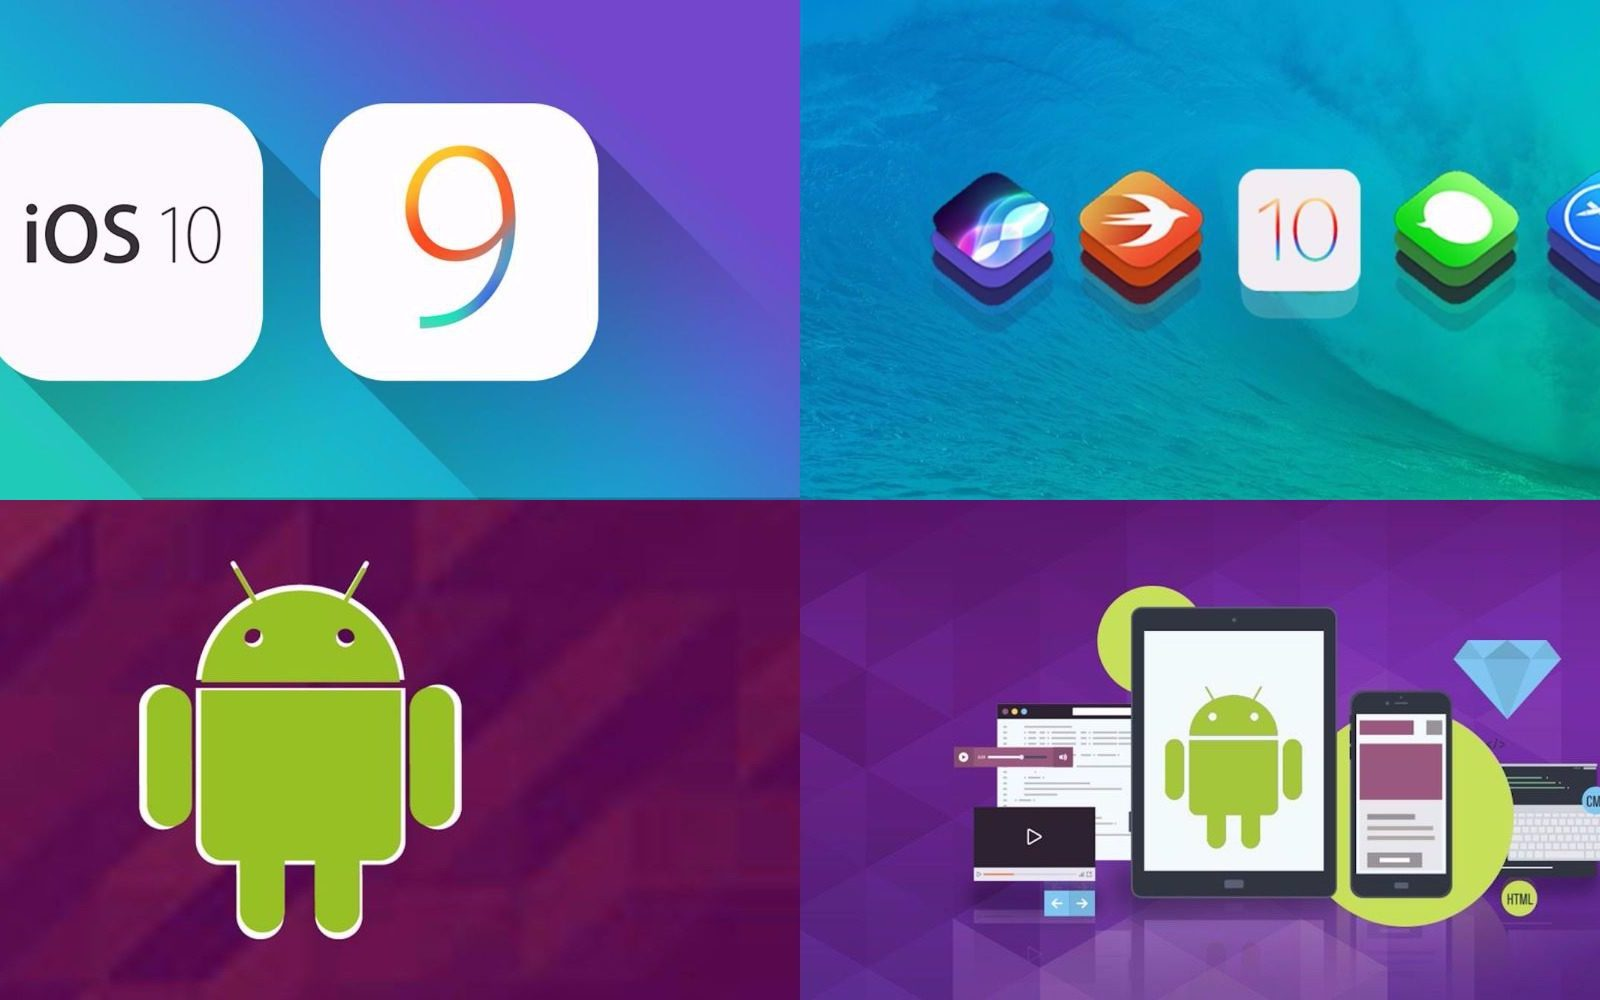 Learn to build an iOS or Android app w/ these courses from $17